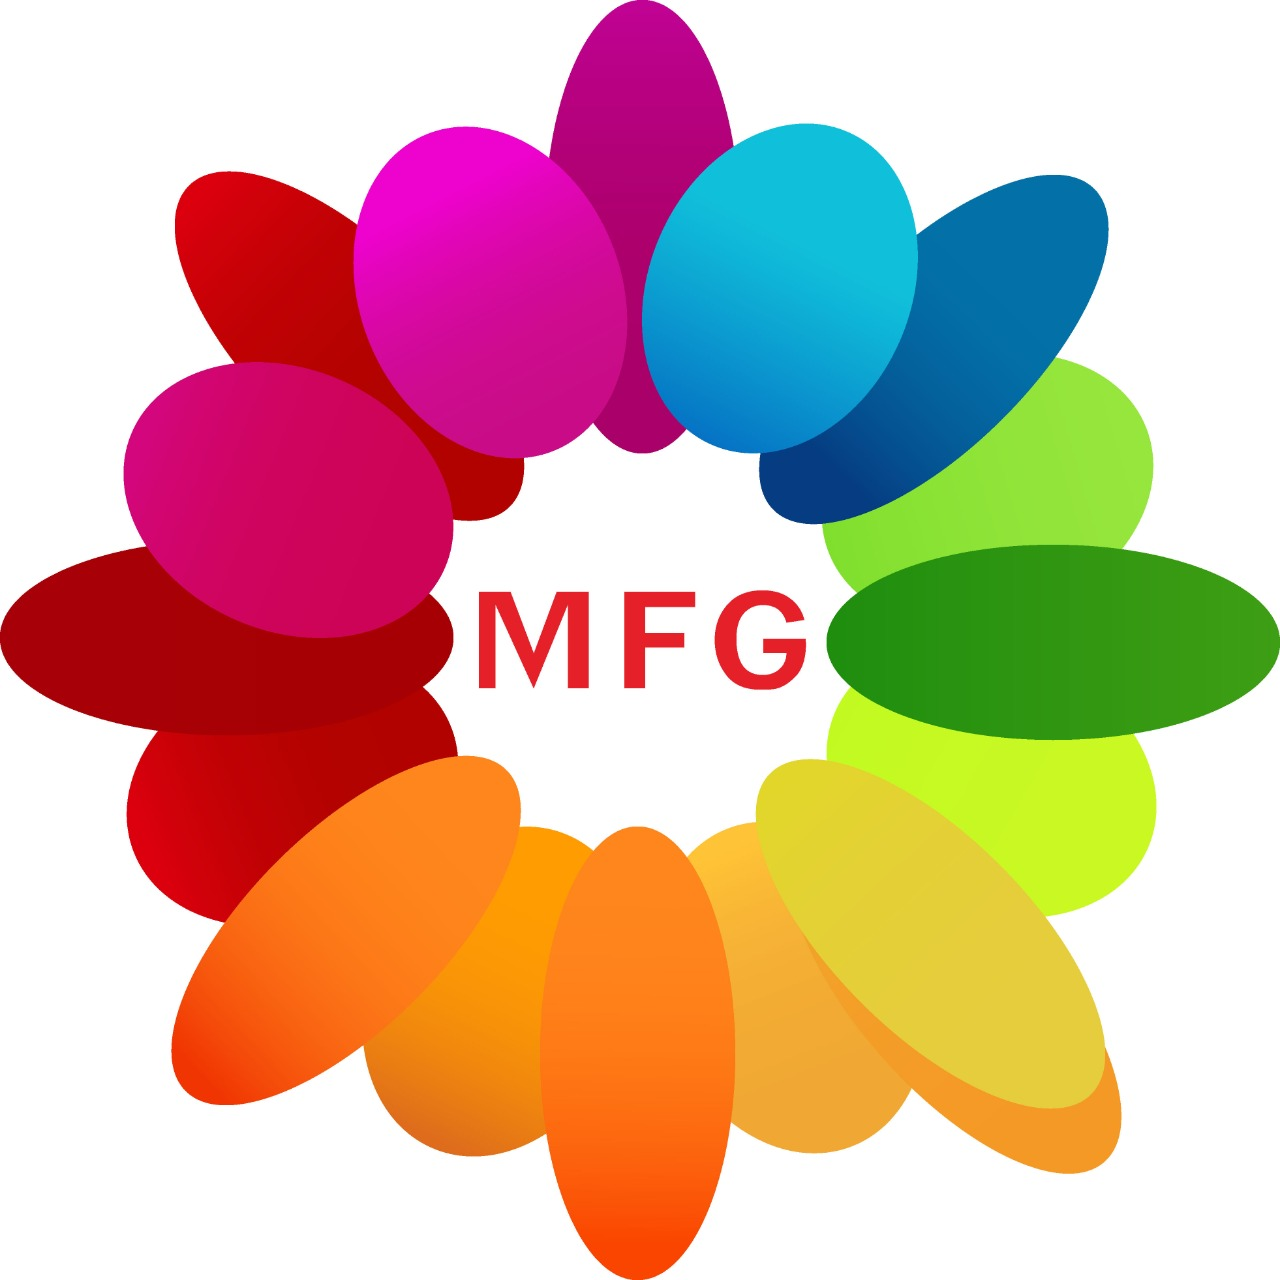 Bunch of white lilies & red carnations  with 1 kg chocolate truffle heart shape cake